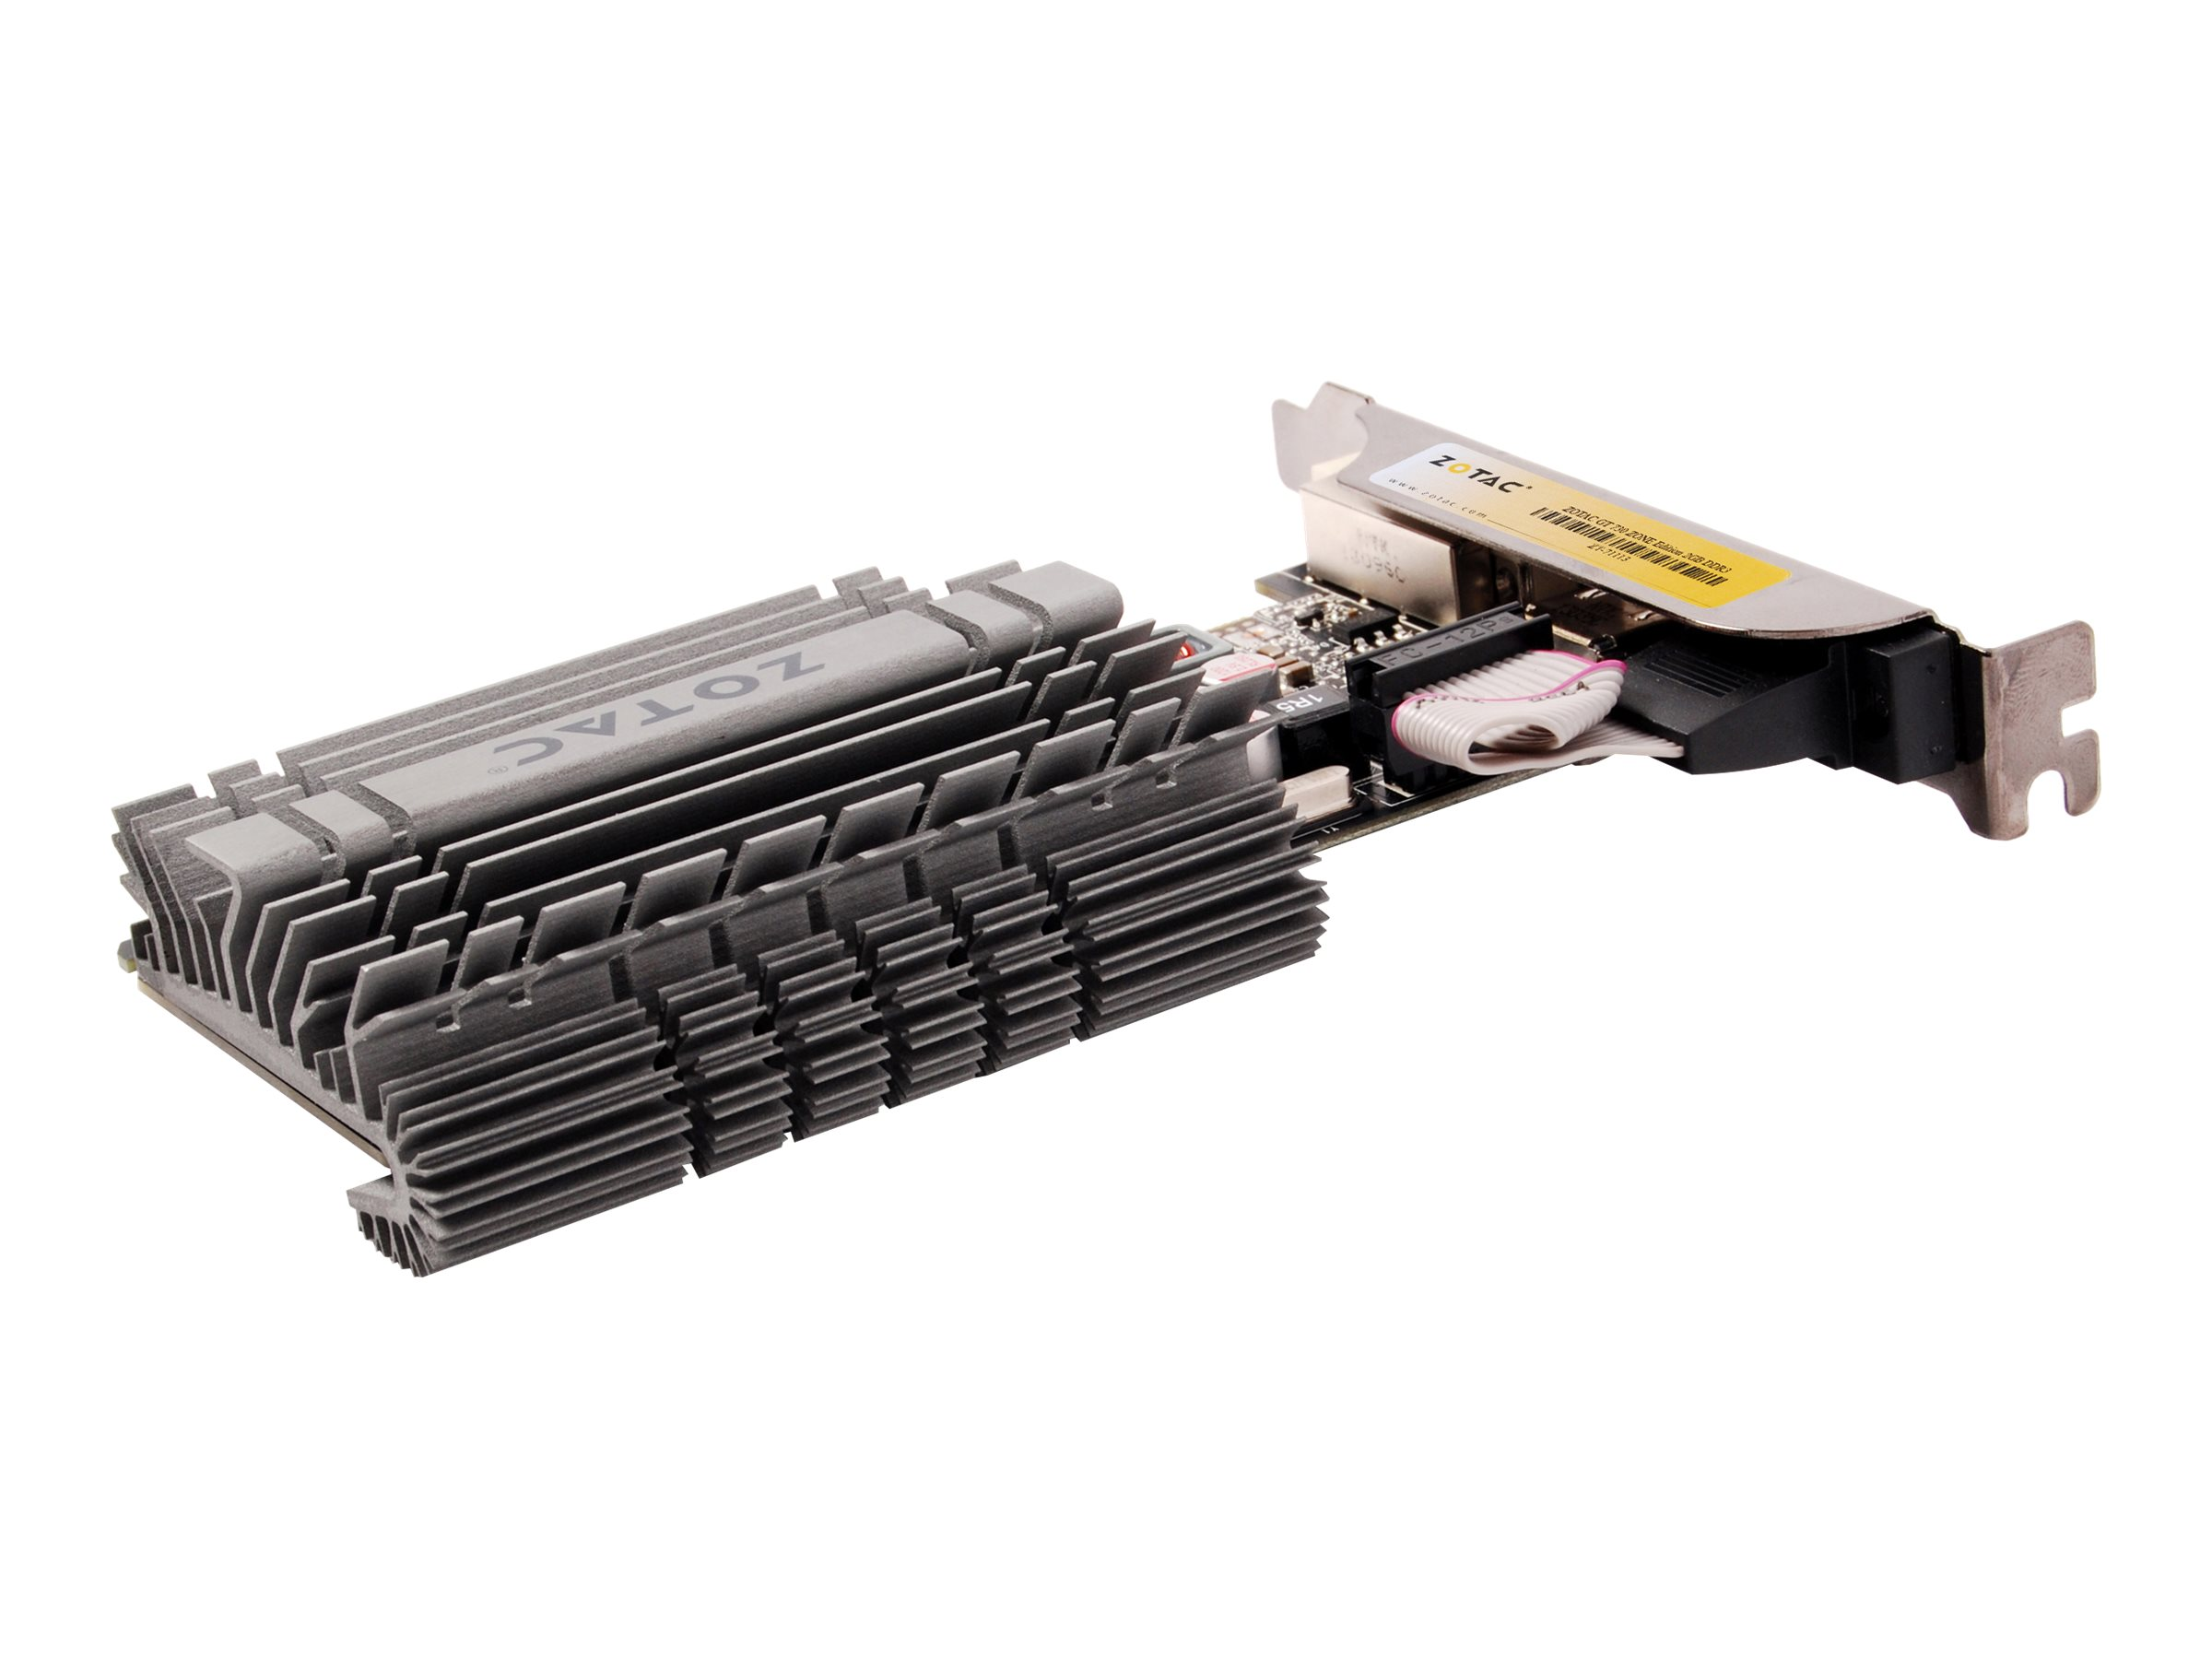 ZOTAC GeForce GT 730 - ZONE Edition - Grafikkarten - GF GT 730 - 2 GB DDR3 - PCIe 2.0 x16 Low-Profile